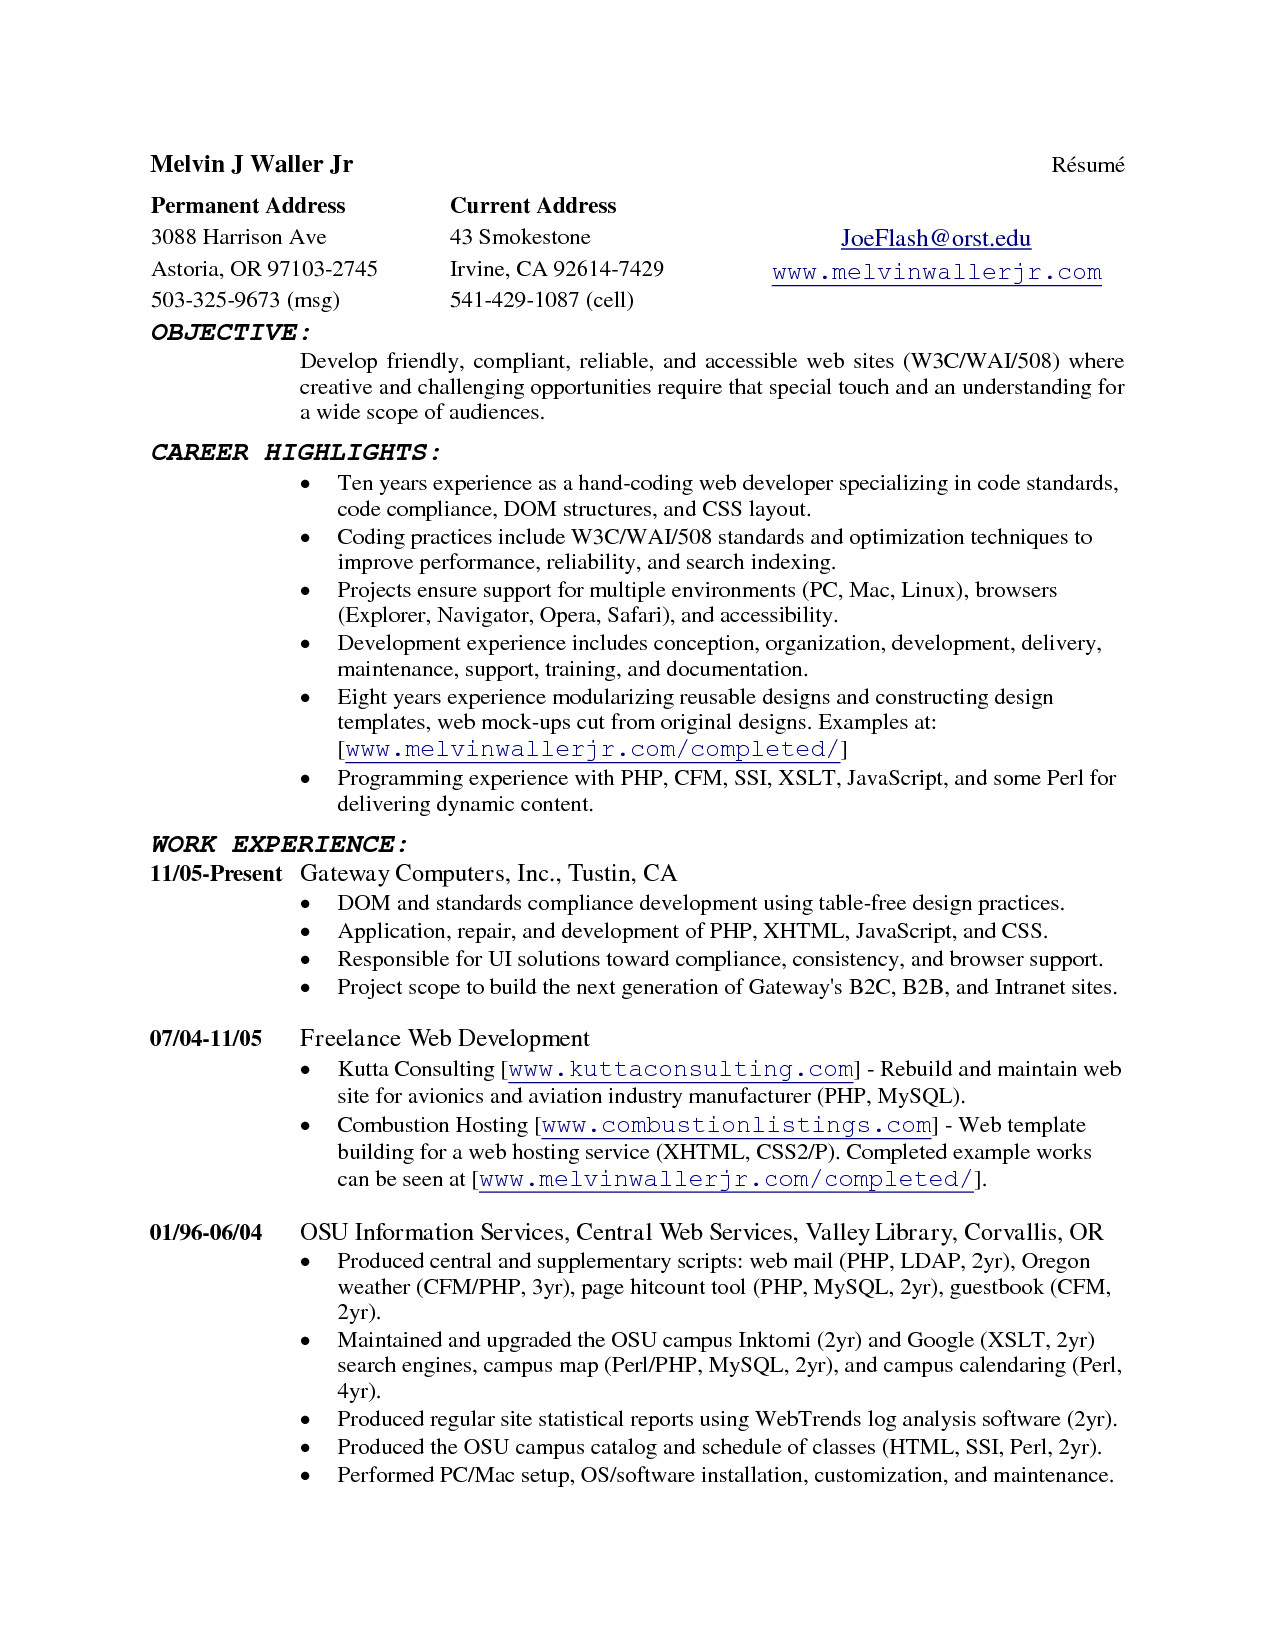 Family Christmas Letter Template - Writer Resume Template Financial Services Resume Template New Hr